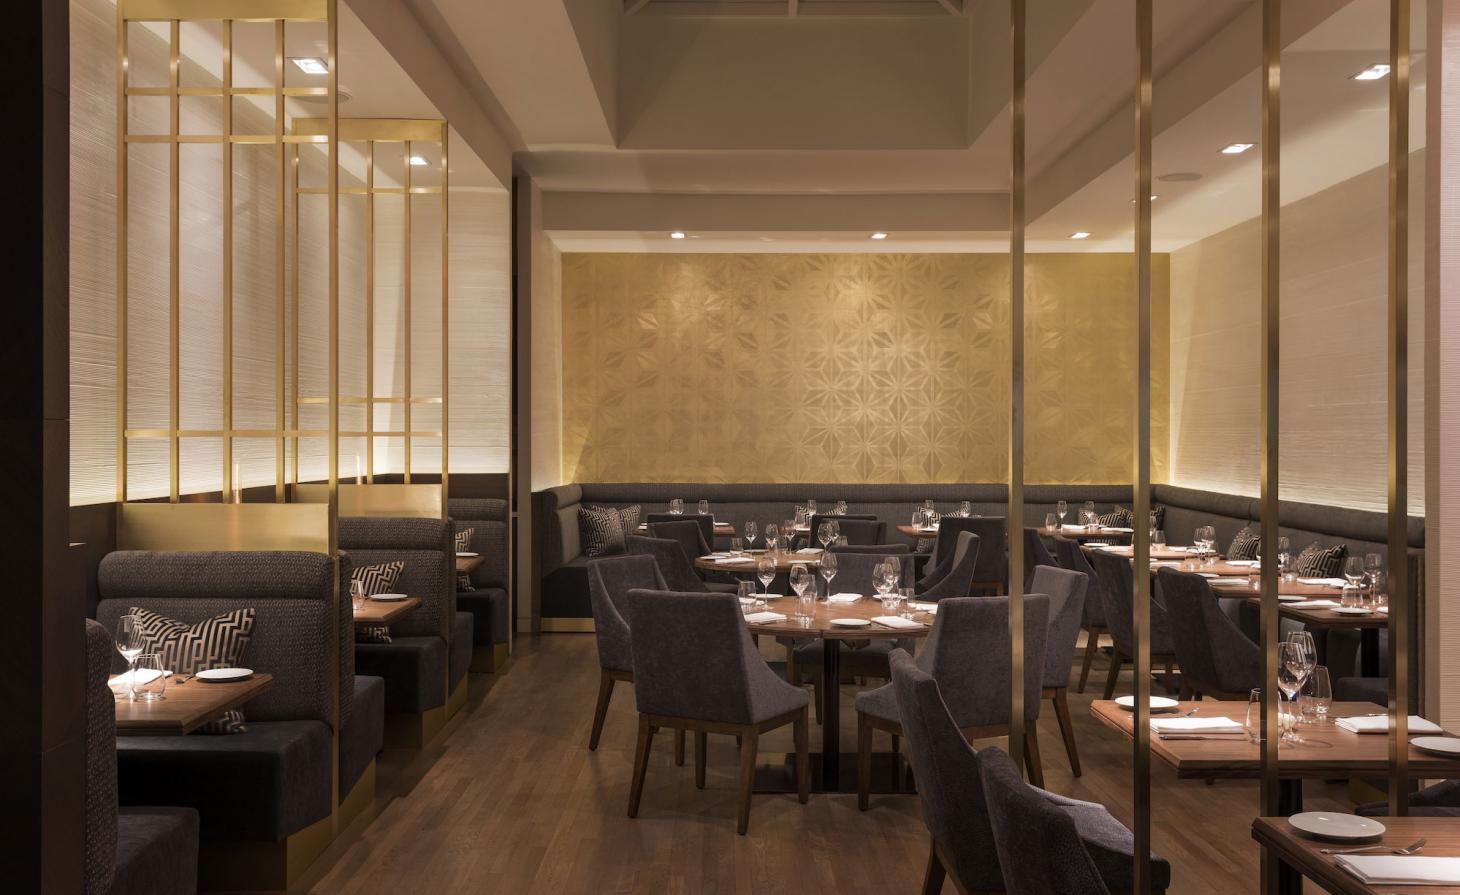 Indian Accent Restaurant Review New York Usa Wallpaper